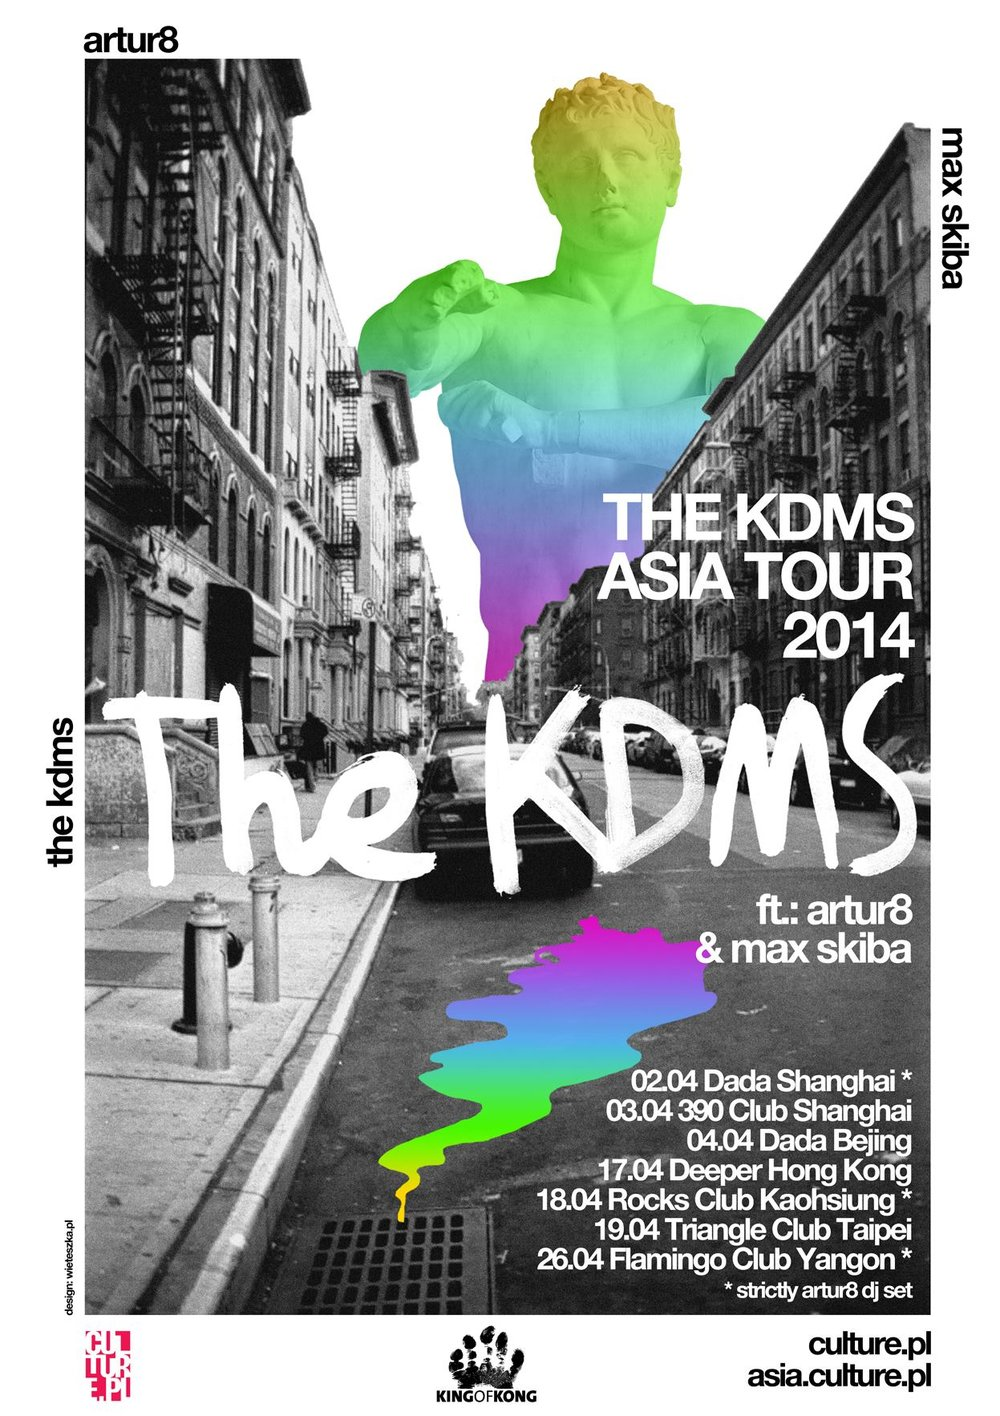 The KDMS Asian tour